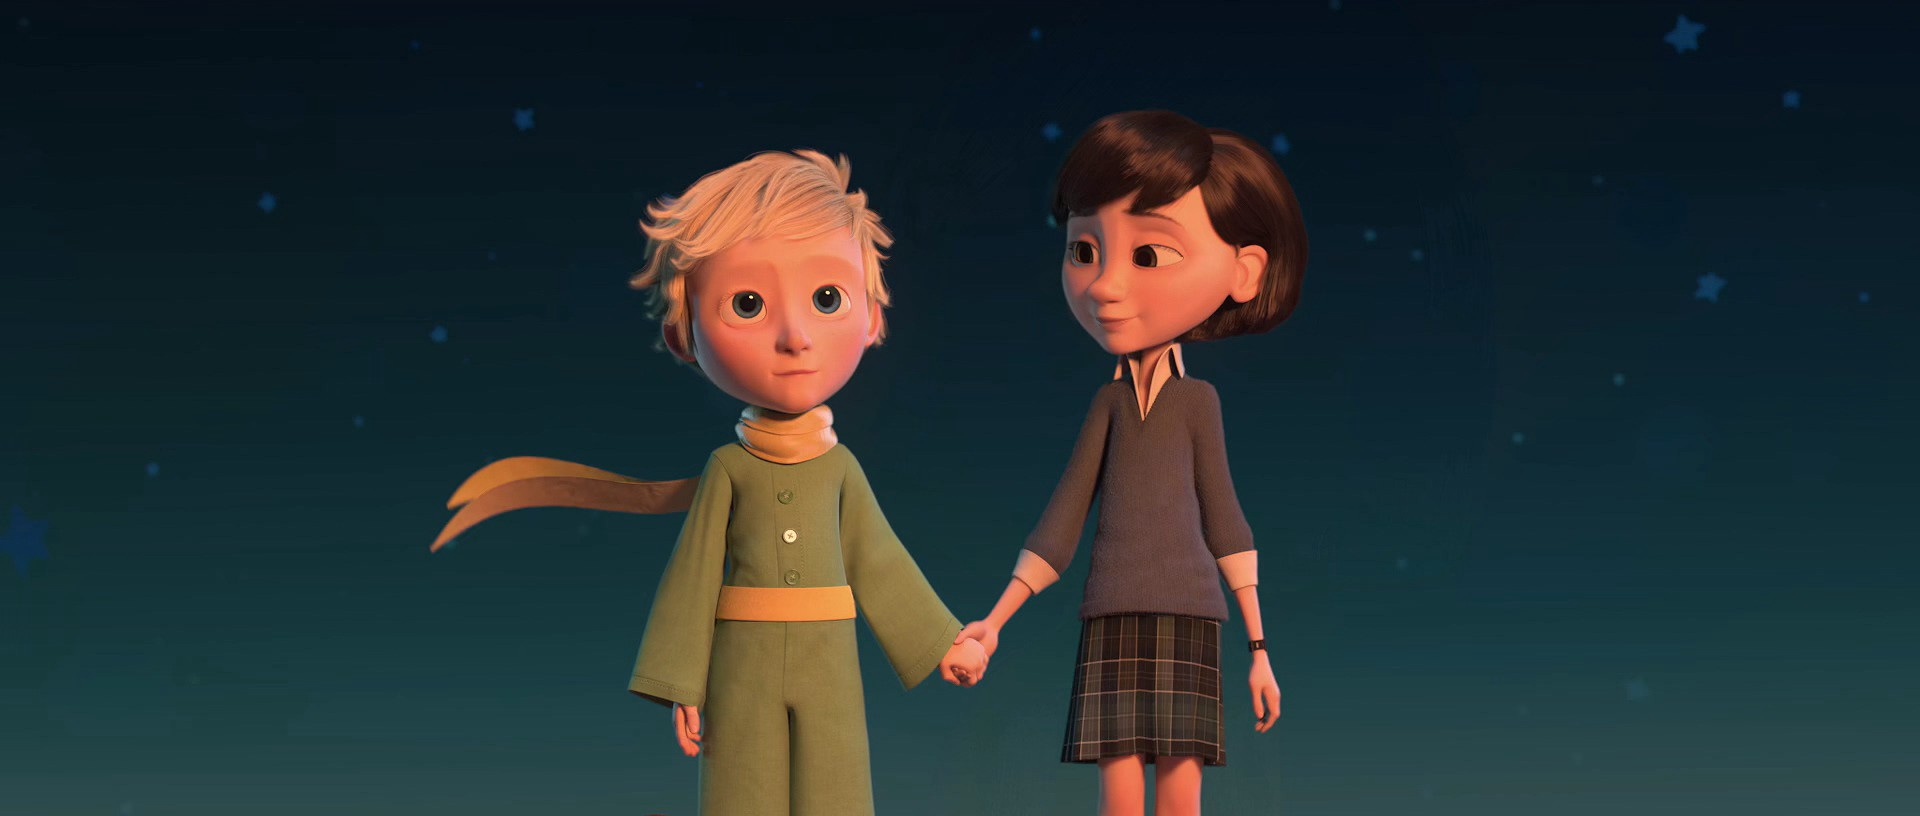 best-inspirational-movies-netflix-india-the-little-prince-image